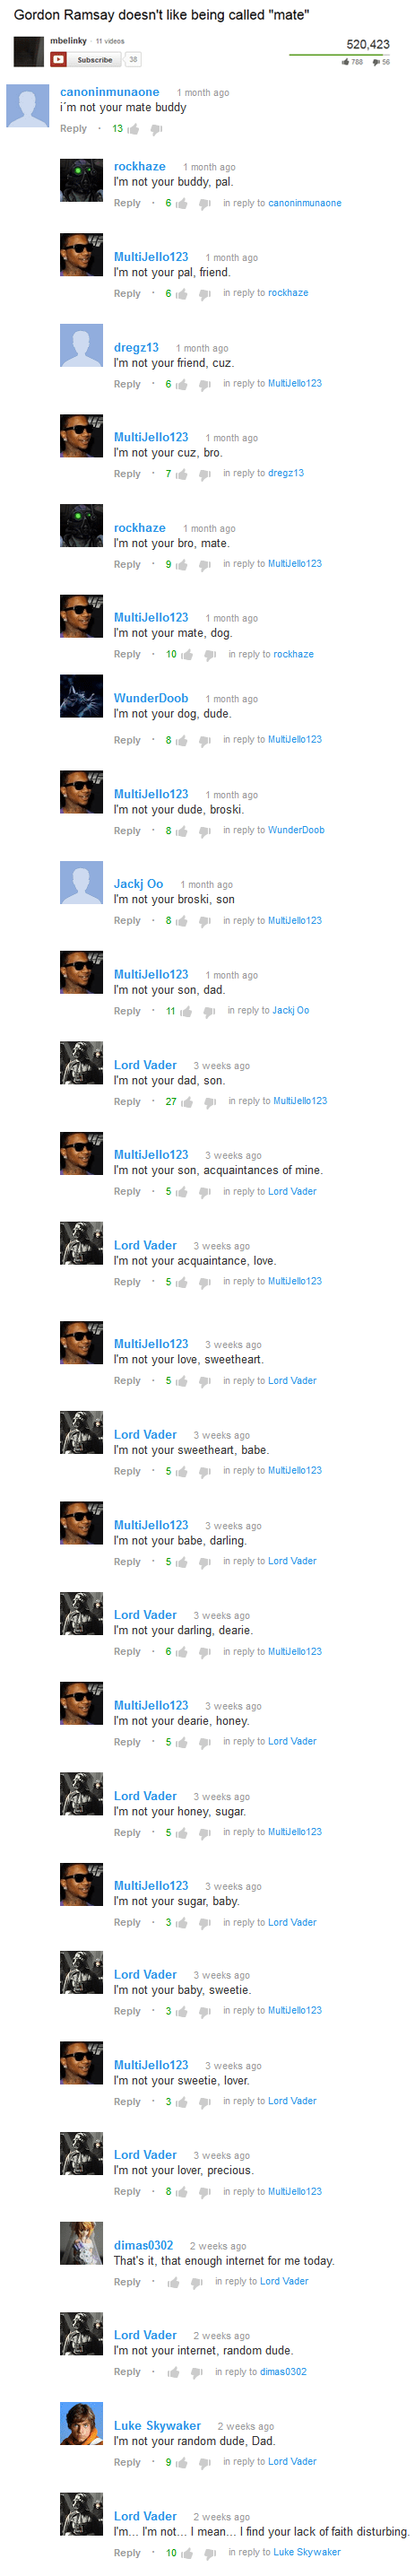 star wars gordon ramsay youtube comments darth vader - 7751936768